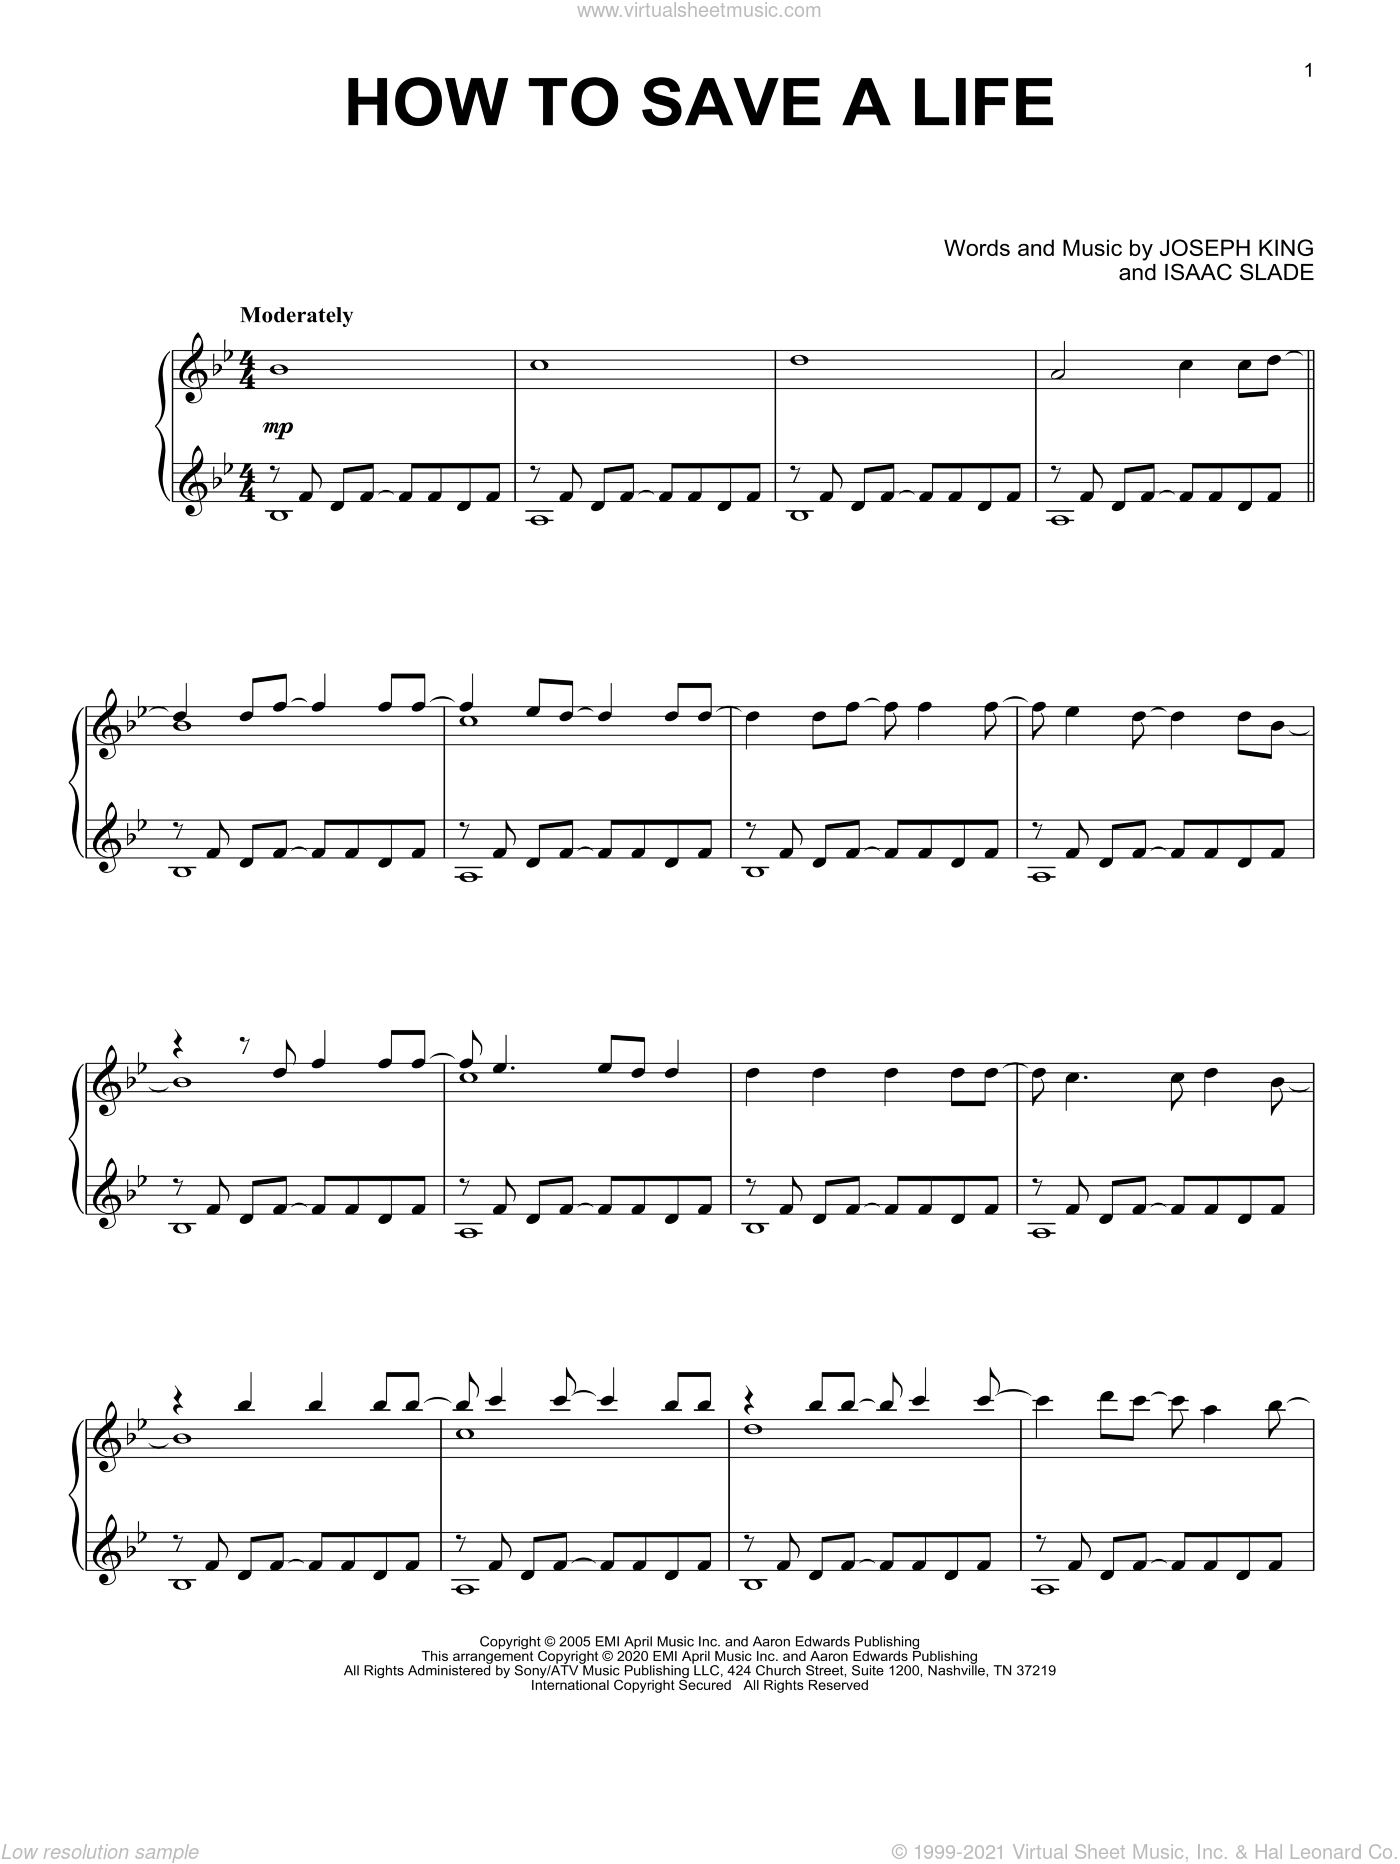 How To Save A Life sheet music for piano solo by The Fray, Isaac Slade and Joseph King, intermediate skill level